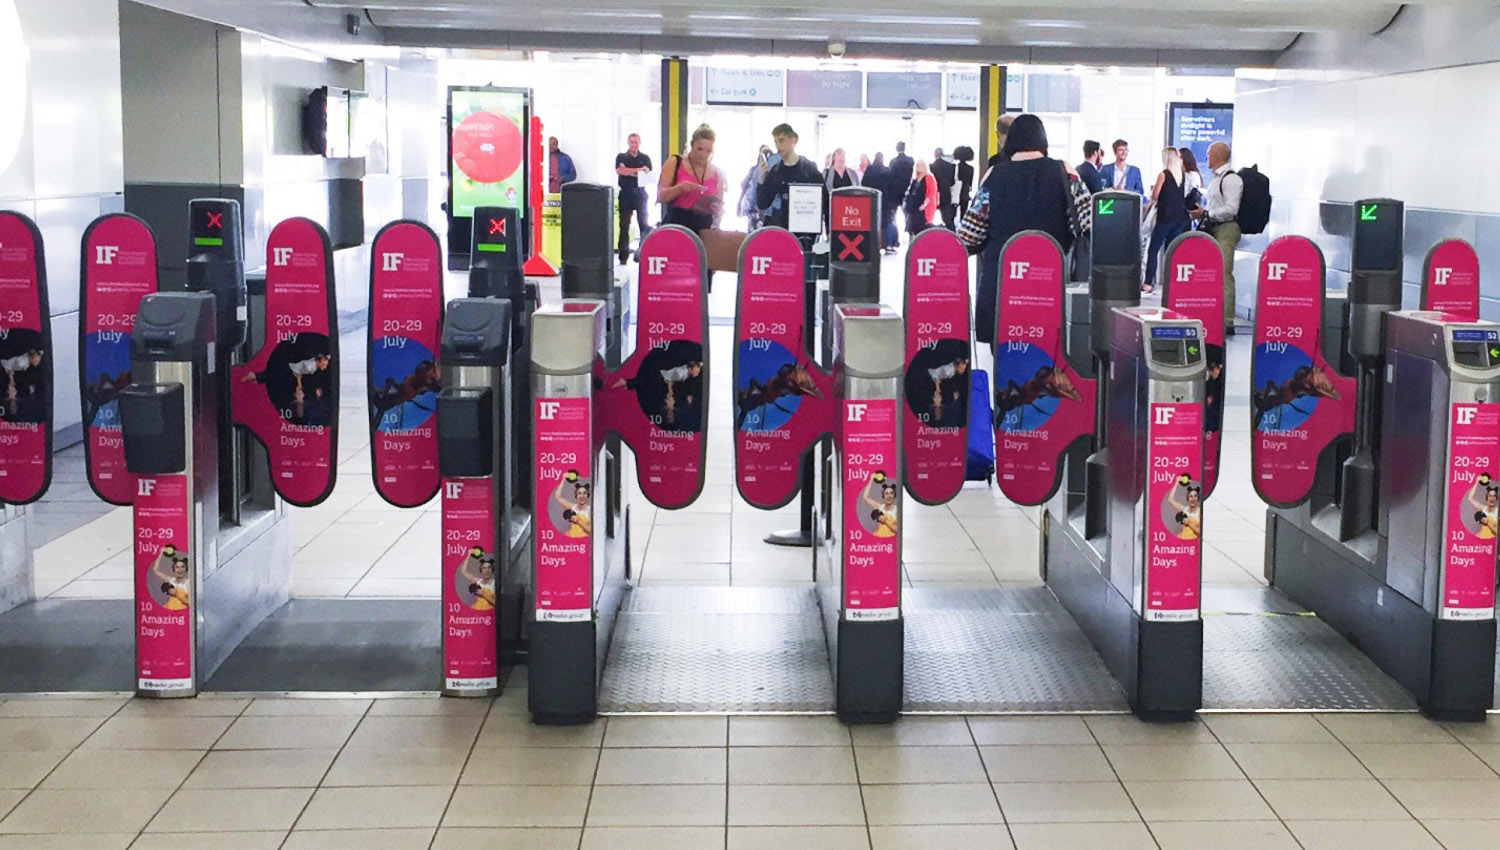 IF MK Festival Milton Keynes branding and advertising campaign by Altogether Creative.